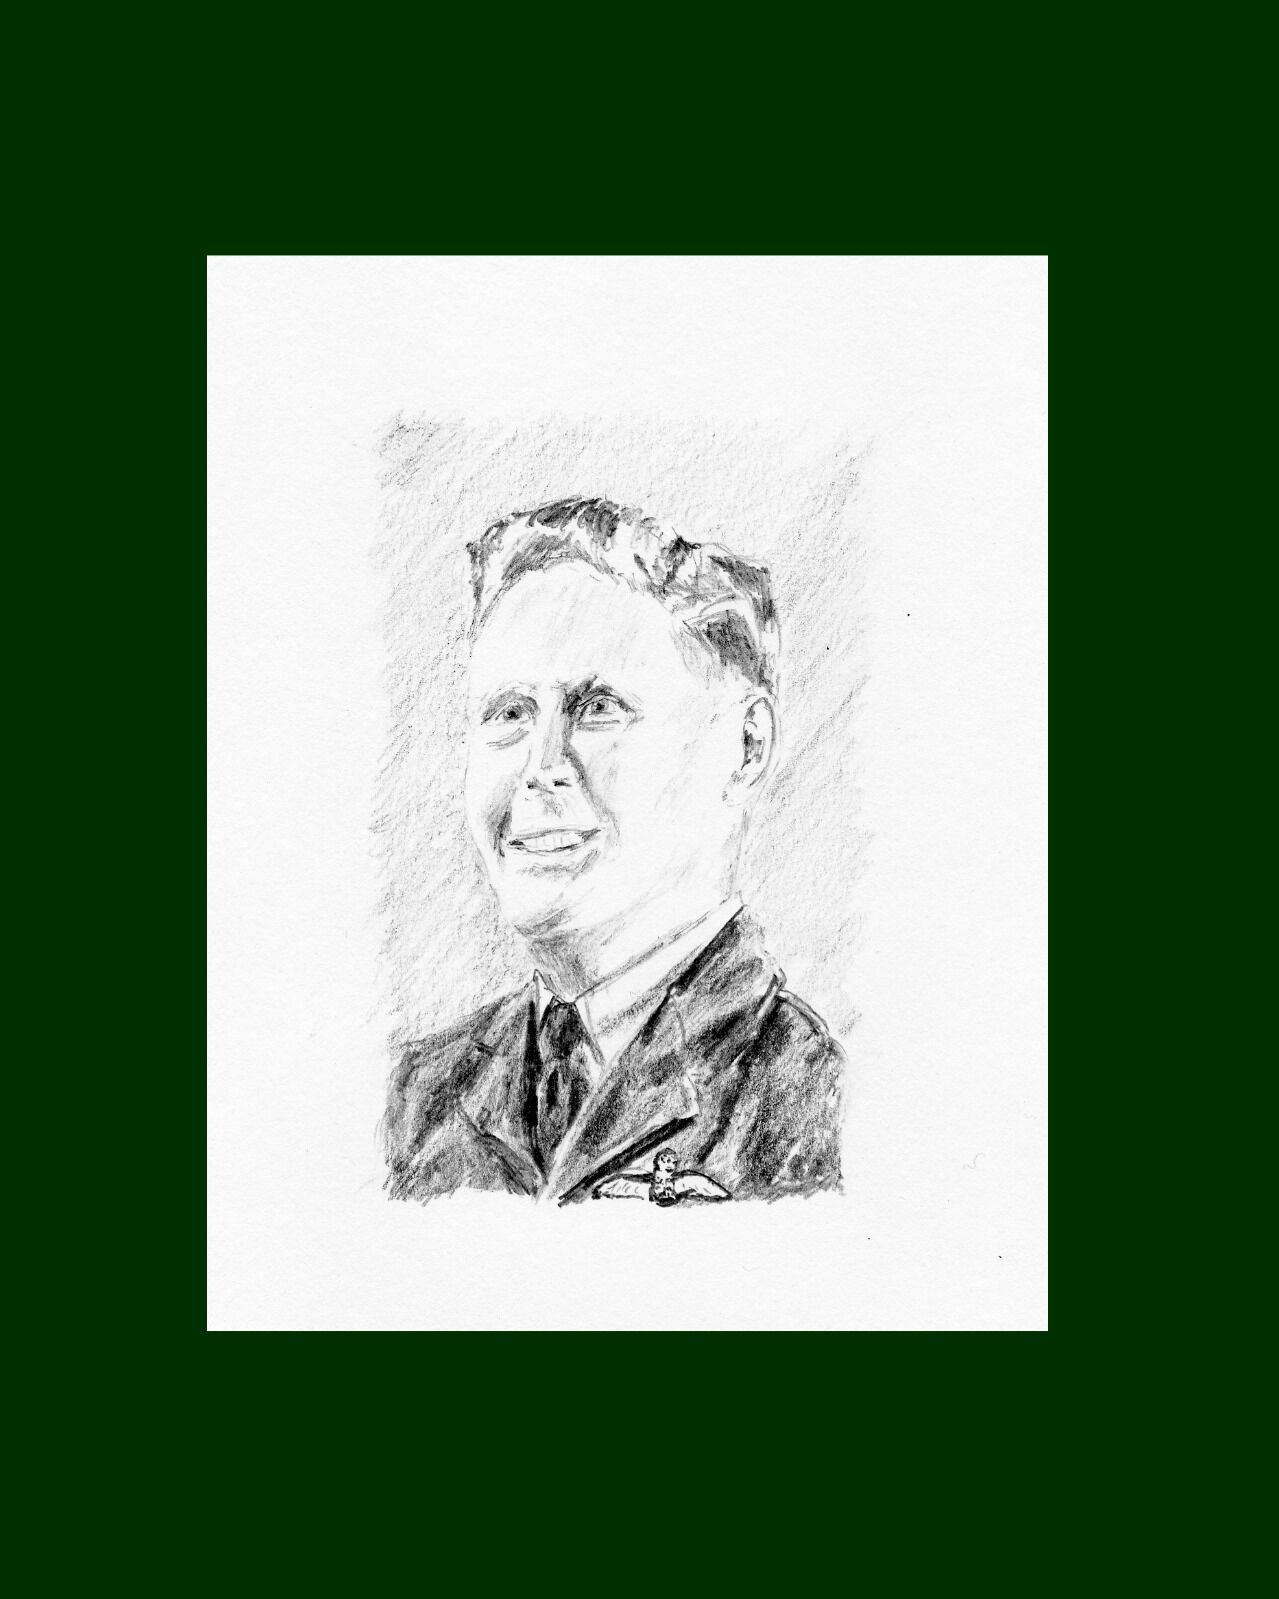 A portrait of Sgt. Basil Whall